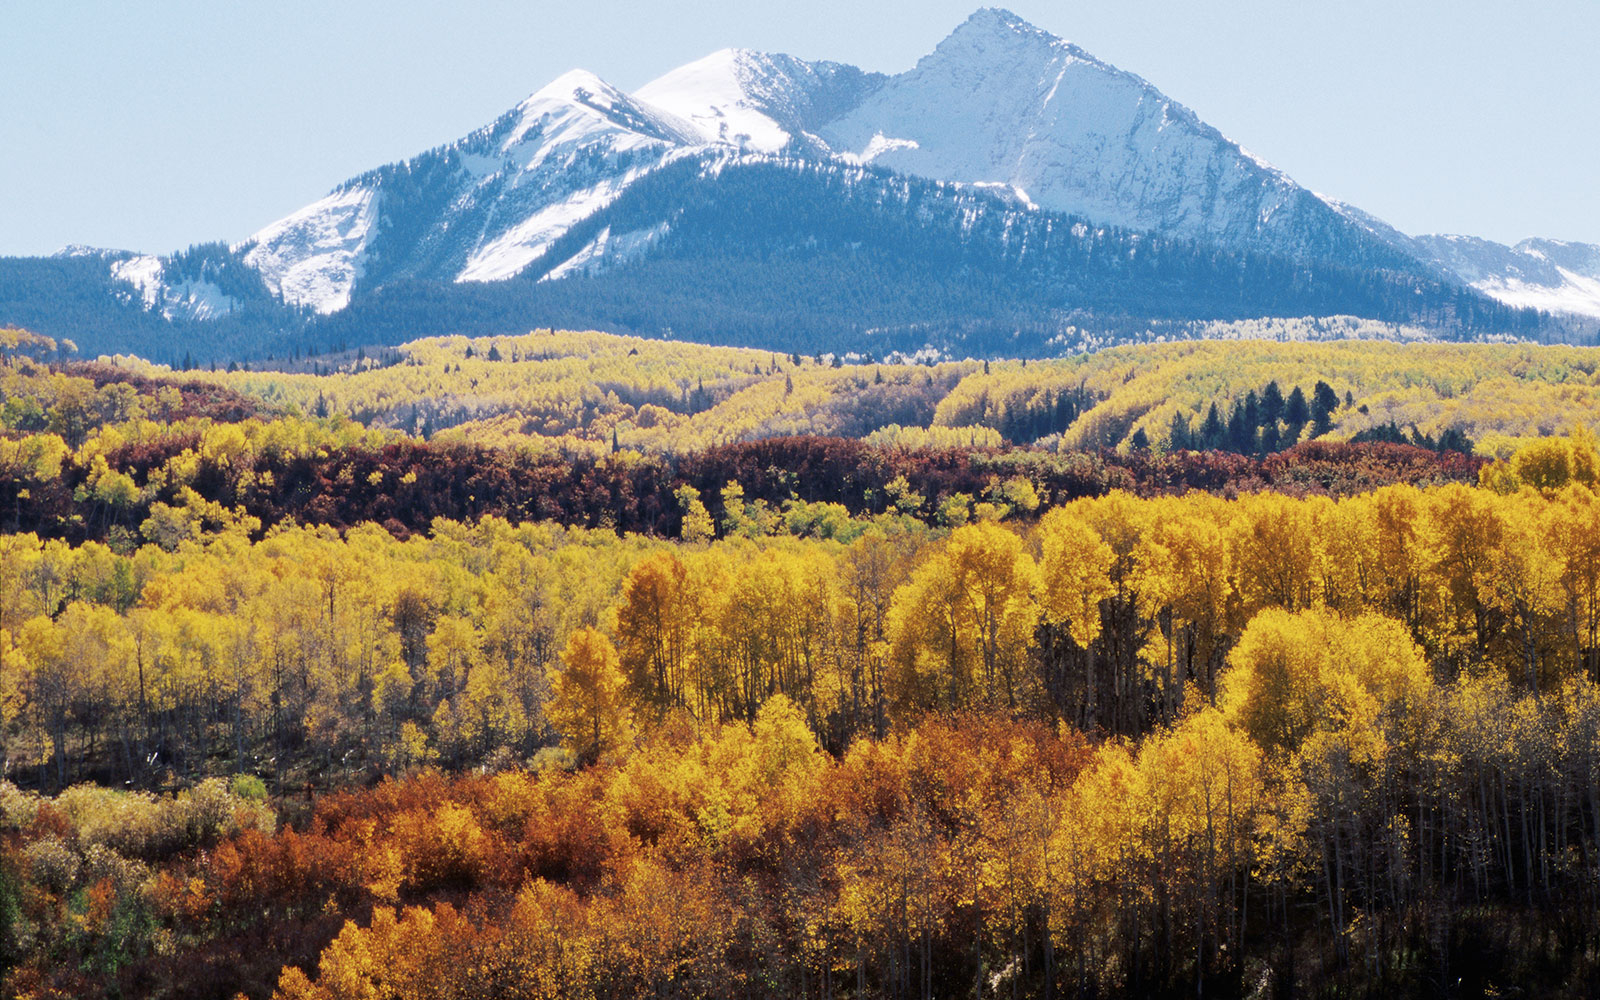 Mountiain view and foliage at West Elk Loop Scenic in Gunnison-Crested Butte, CO